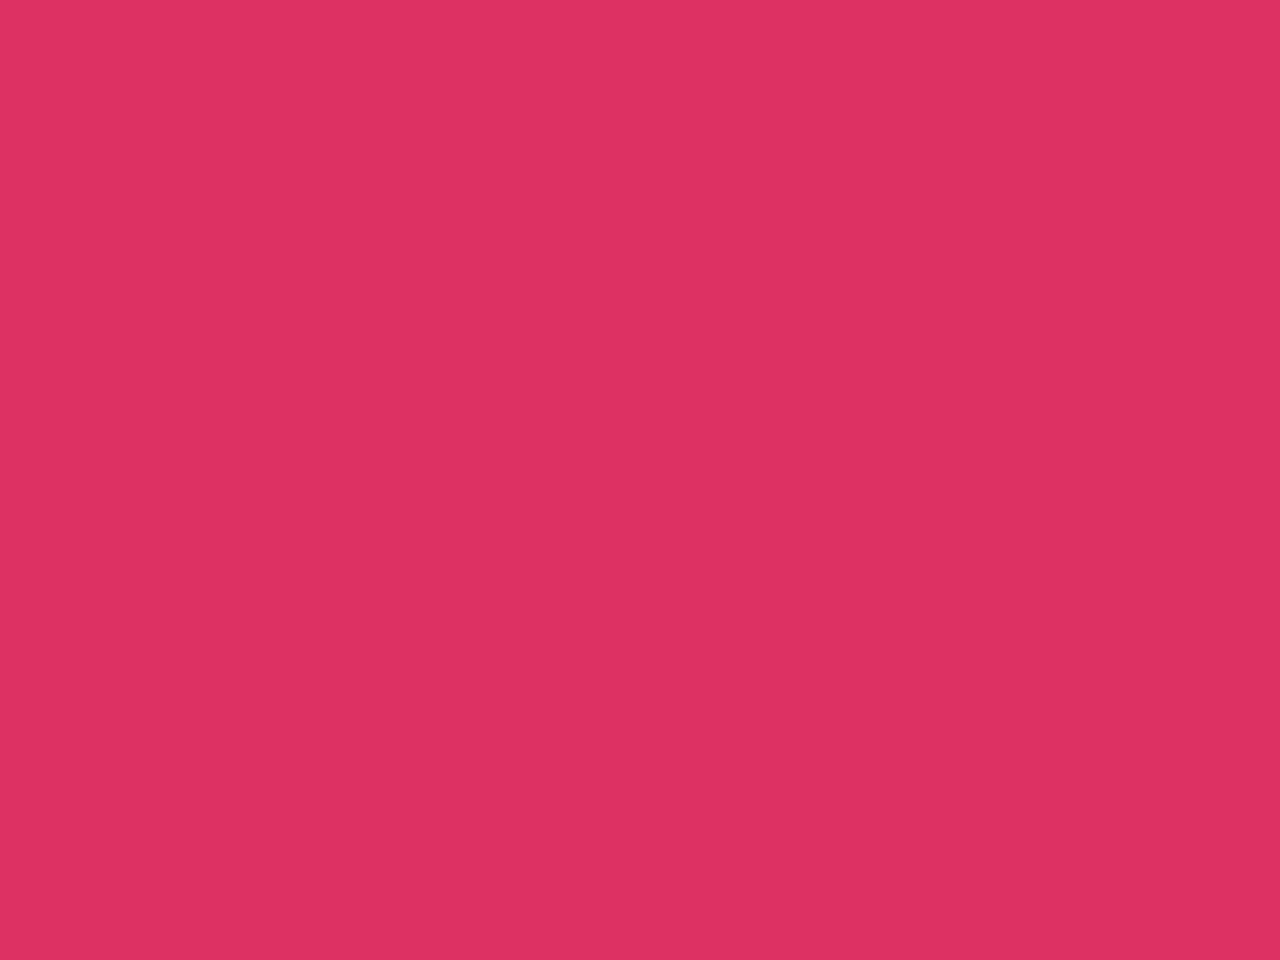 1280x960 Cherry Solid Color Background